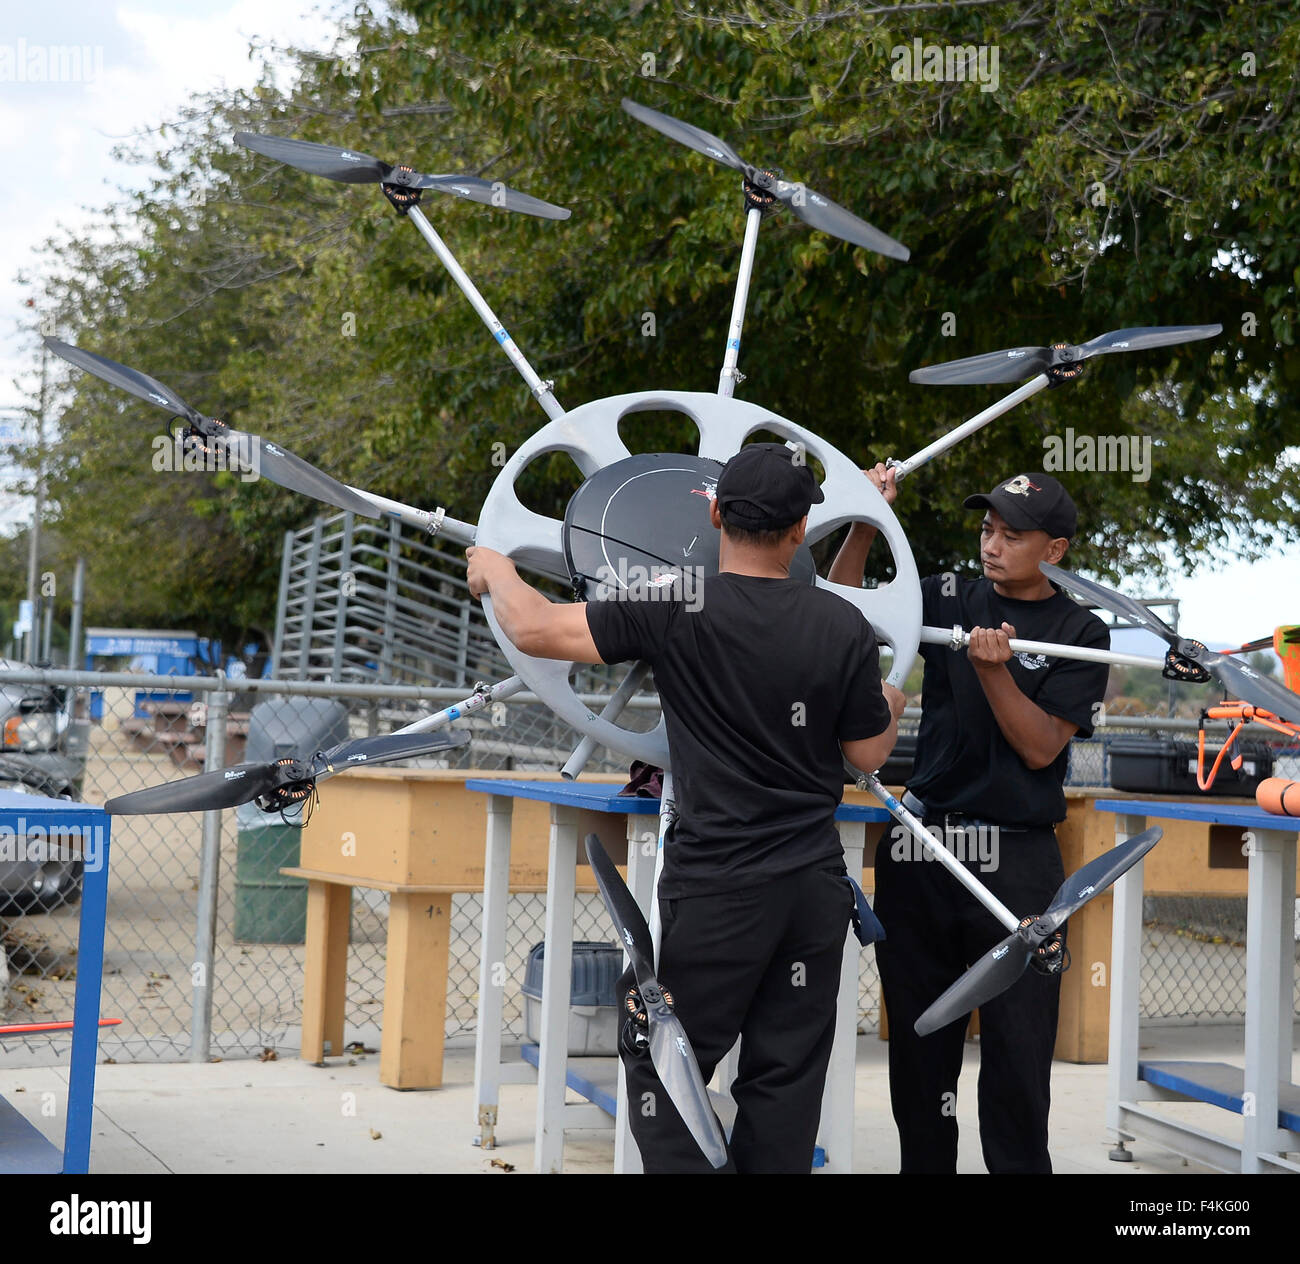 Van Nuys. 19th Oct, 2015. CA/US. Ralph Rebaya of HELIWATCH with their mega drone works on a video shoot Monday.Today - Stock Image